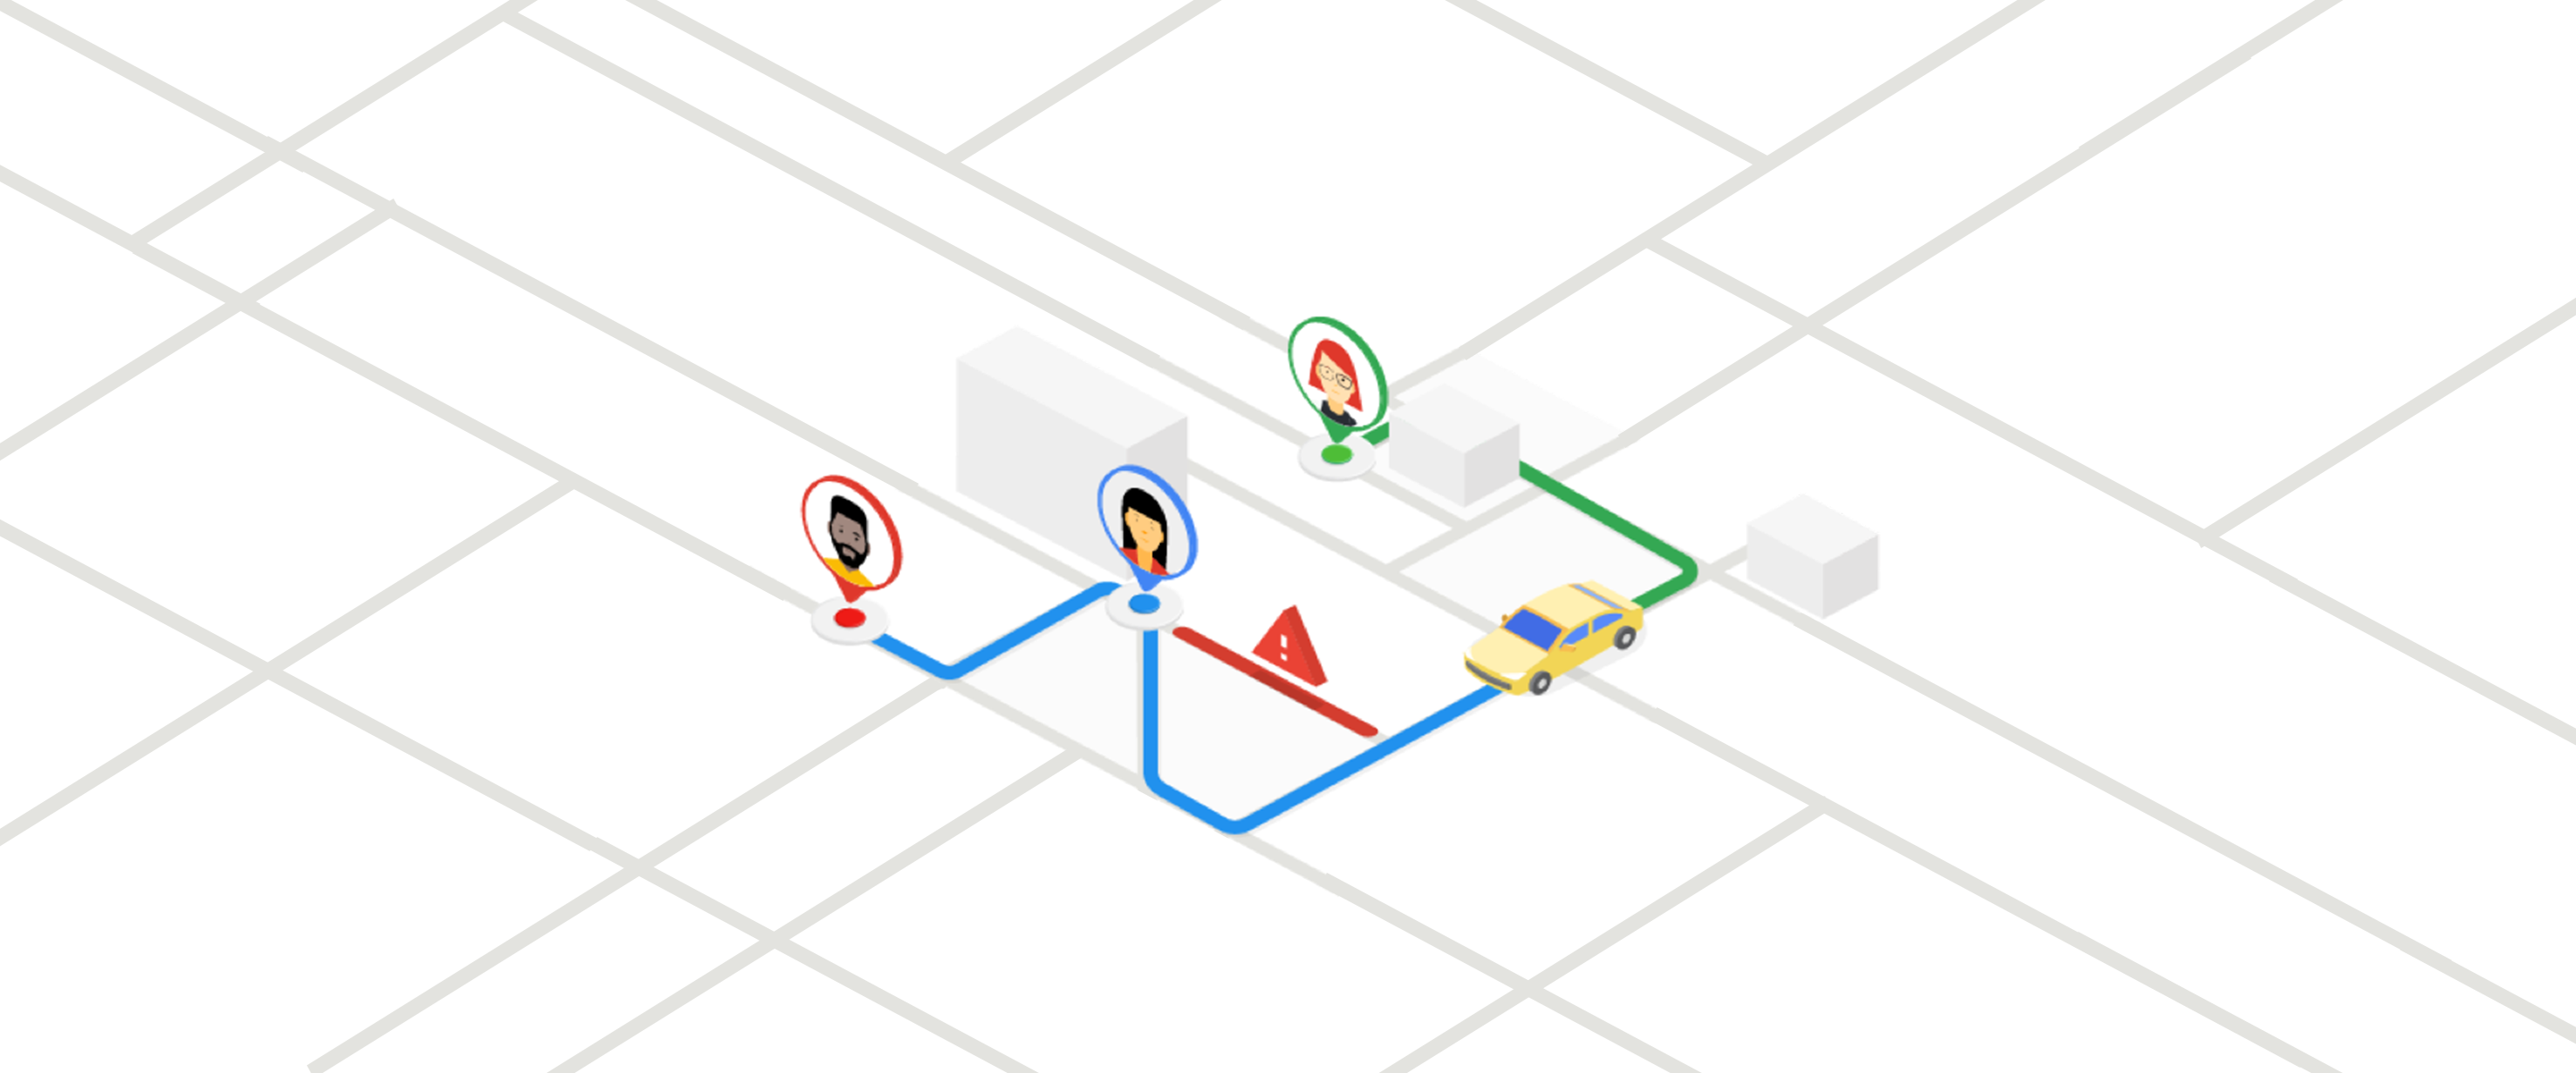 Announcing the Google Maps Platform On-demand Rides & Deliveries solution